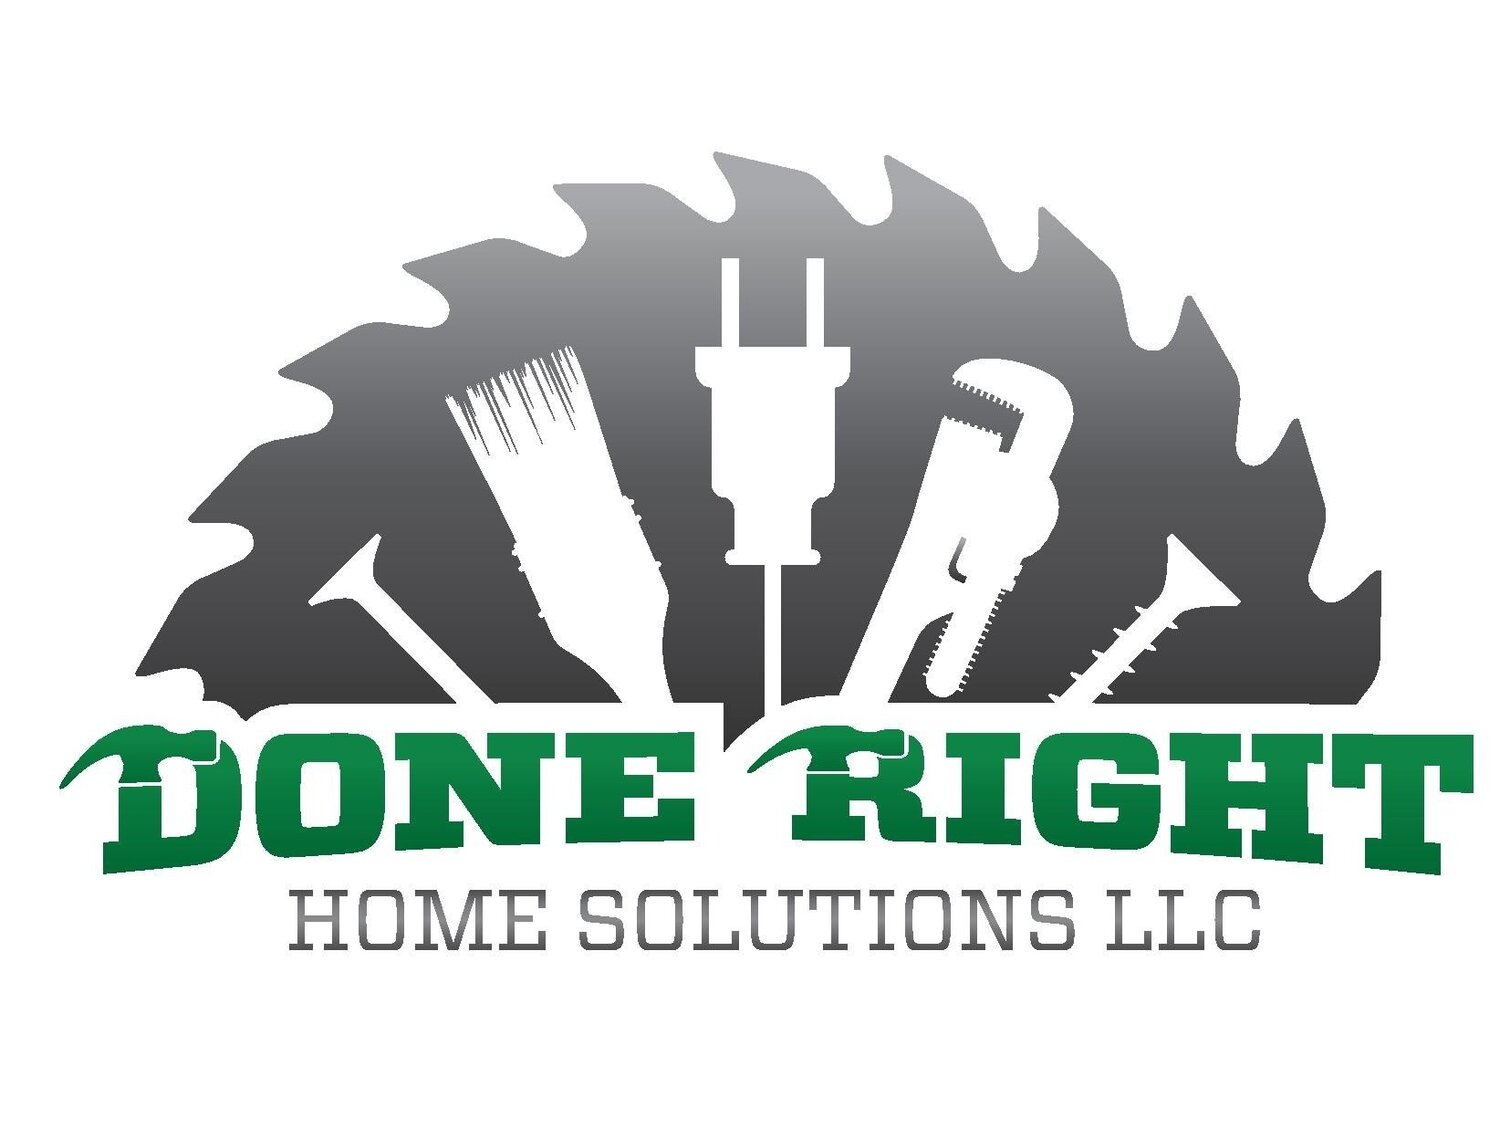 Done Right Home Solutions